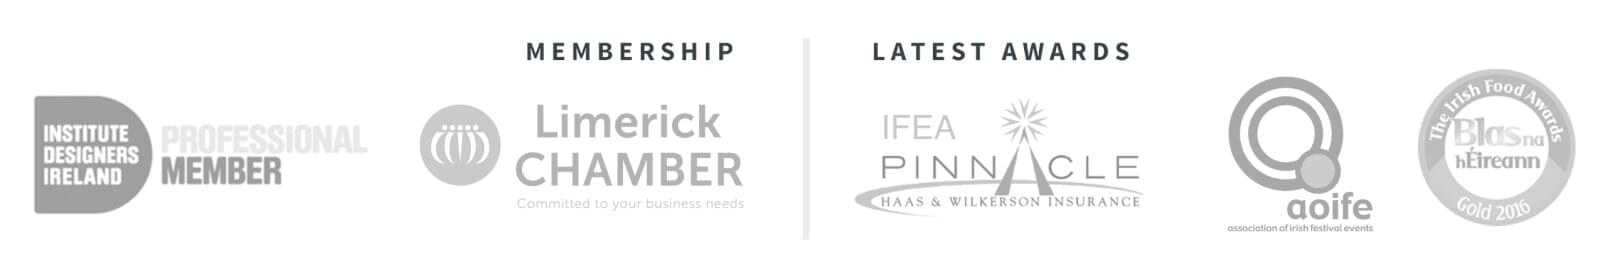 membership grey brainstorm design | branding, graphic & website design limerick